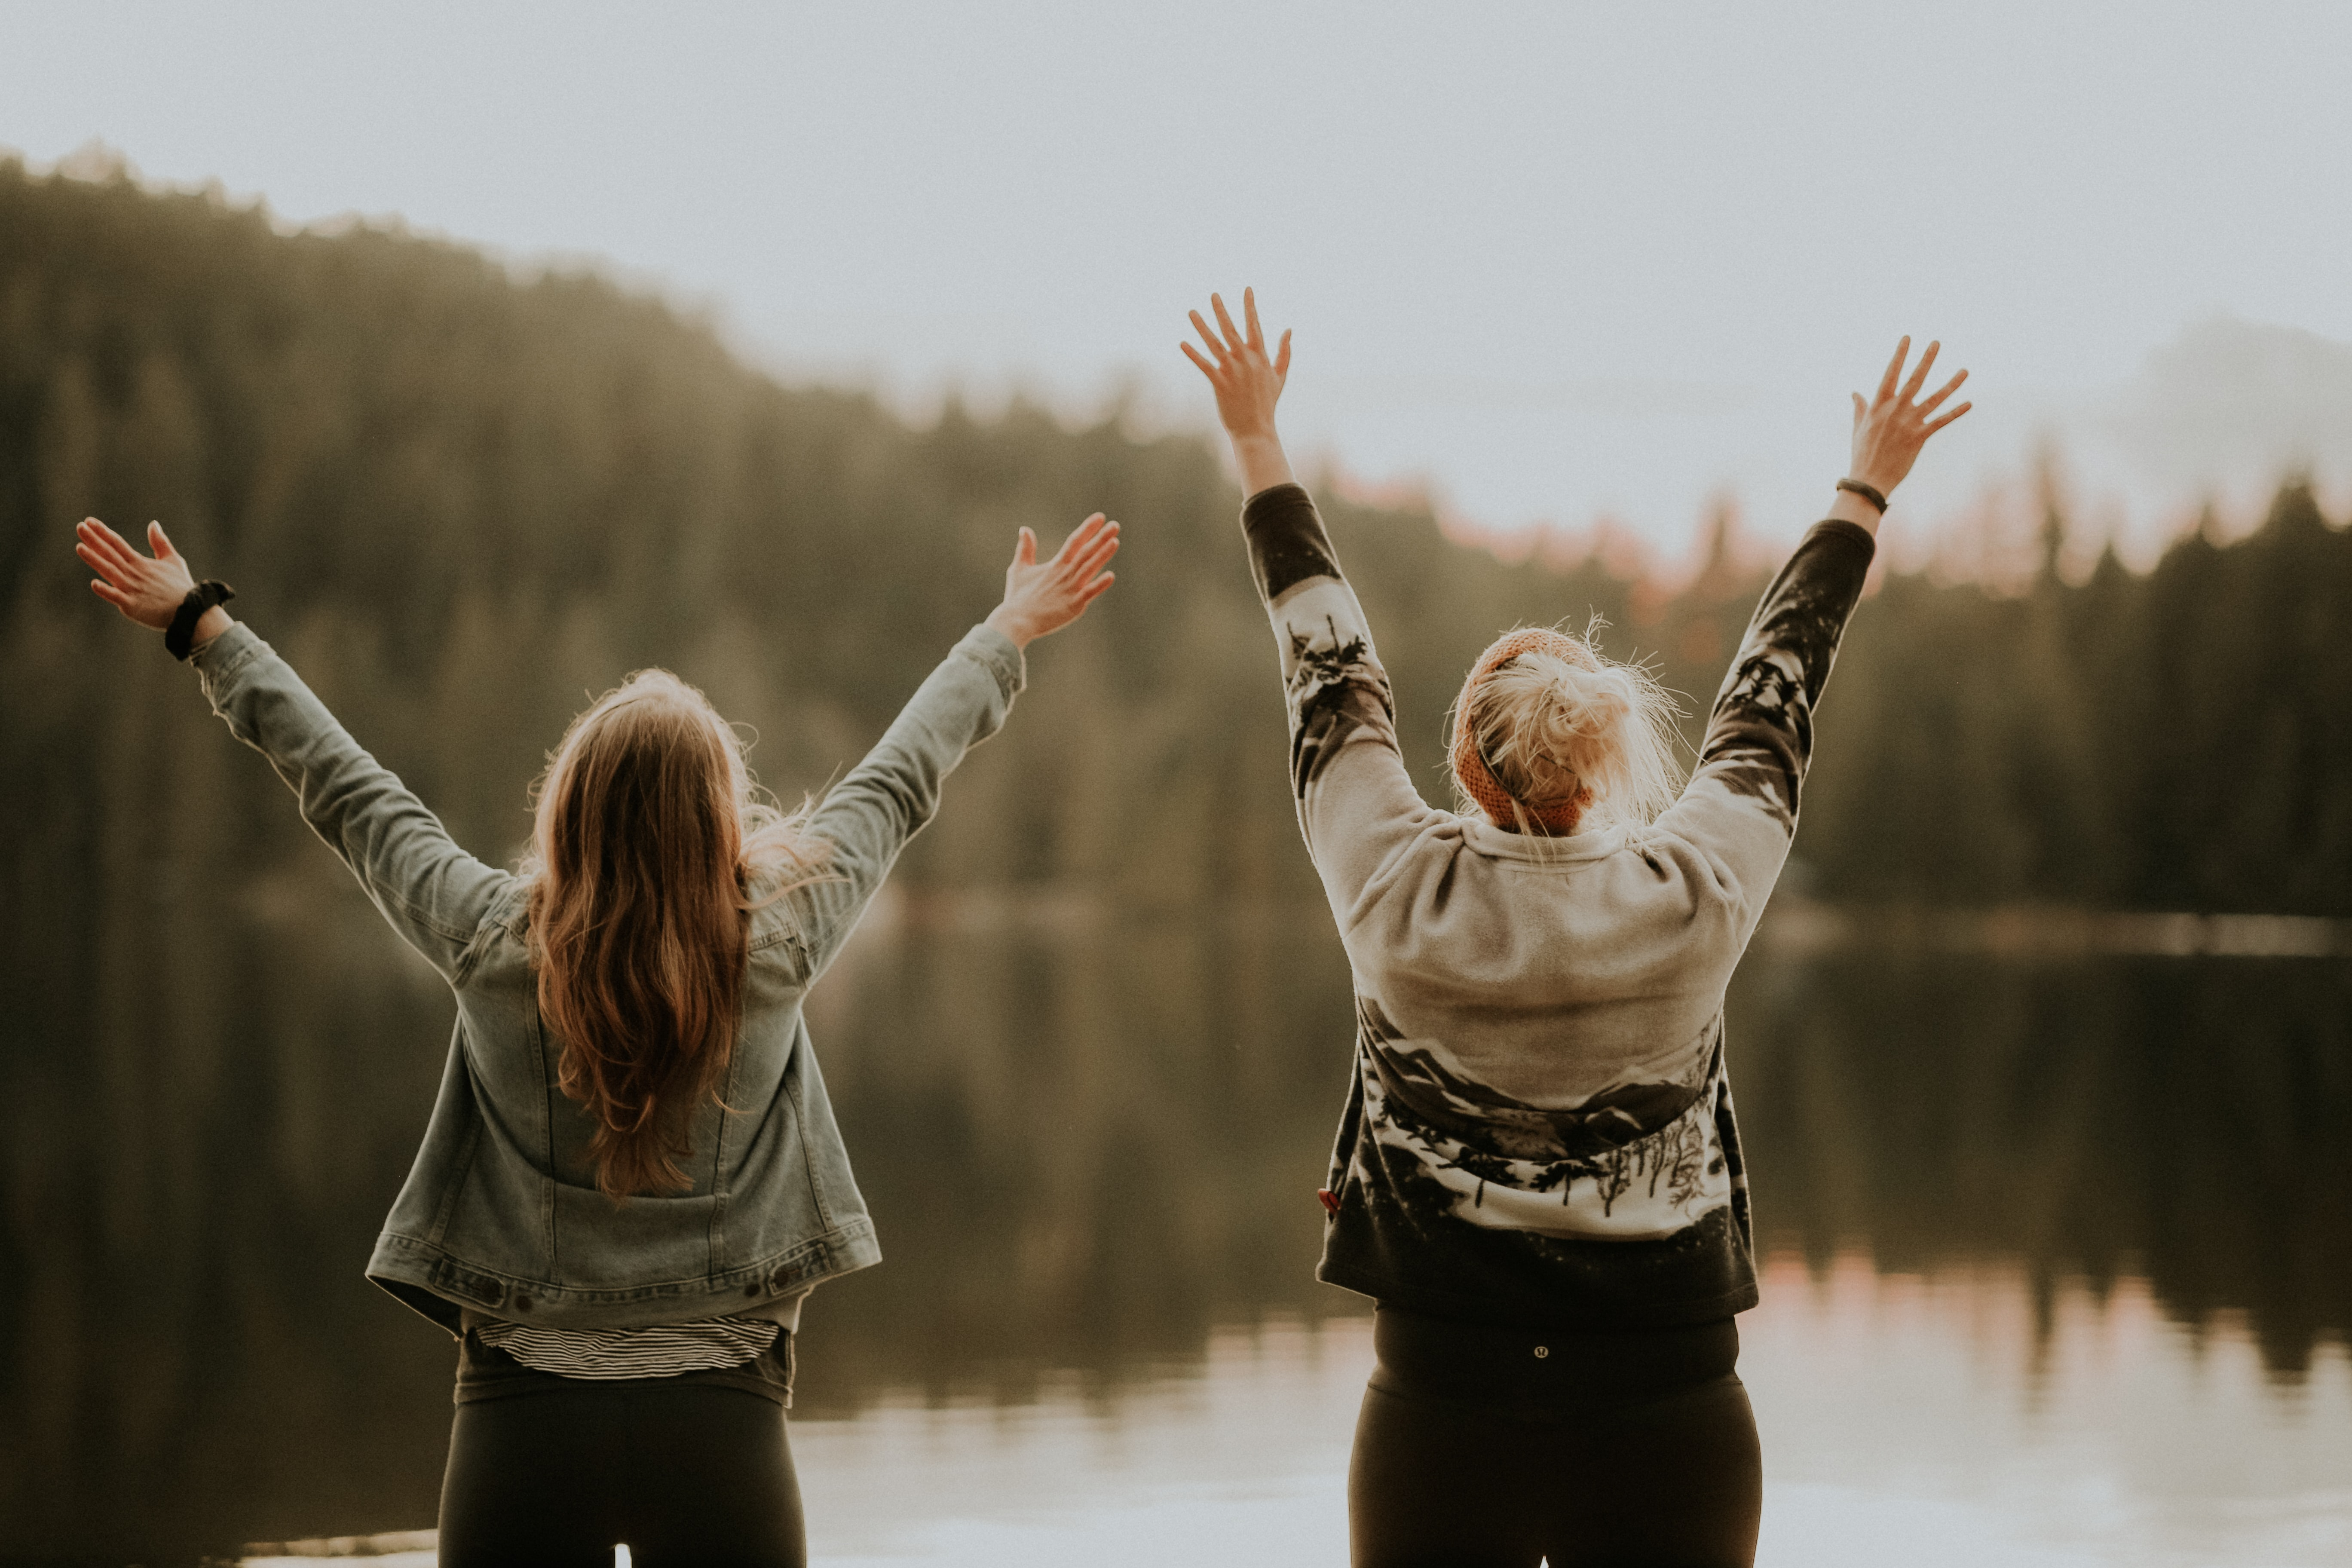 Two woman standing with arms raised in front of a lake